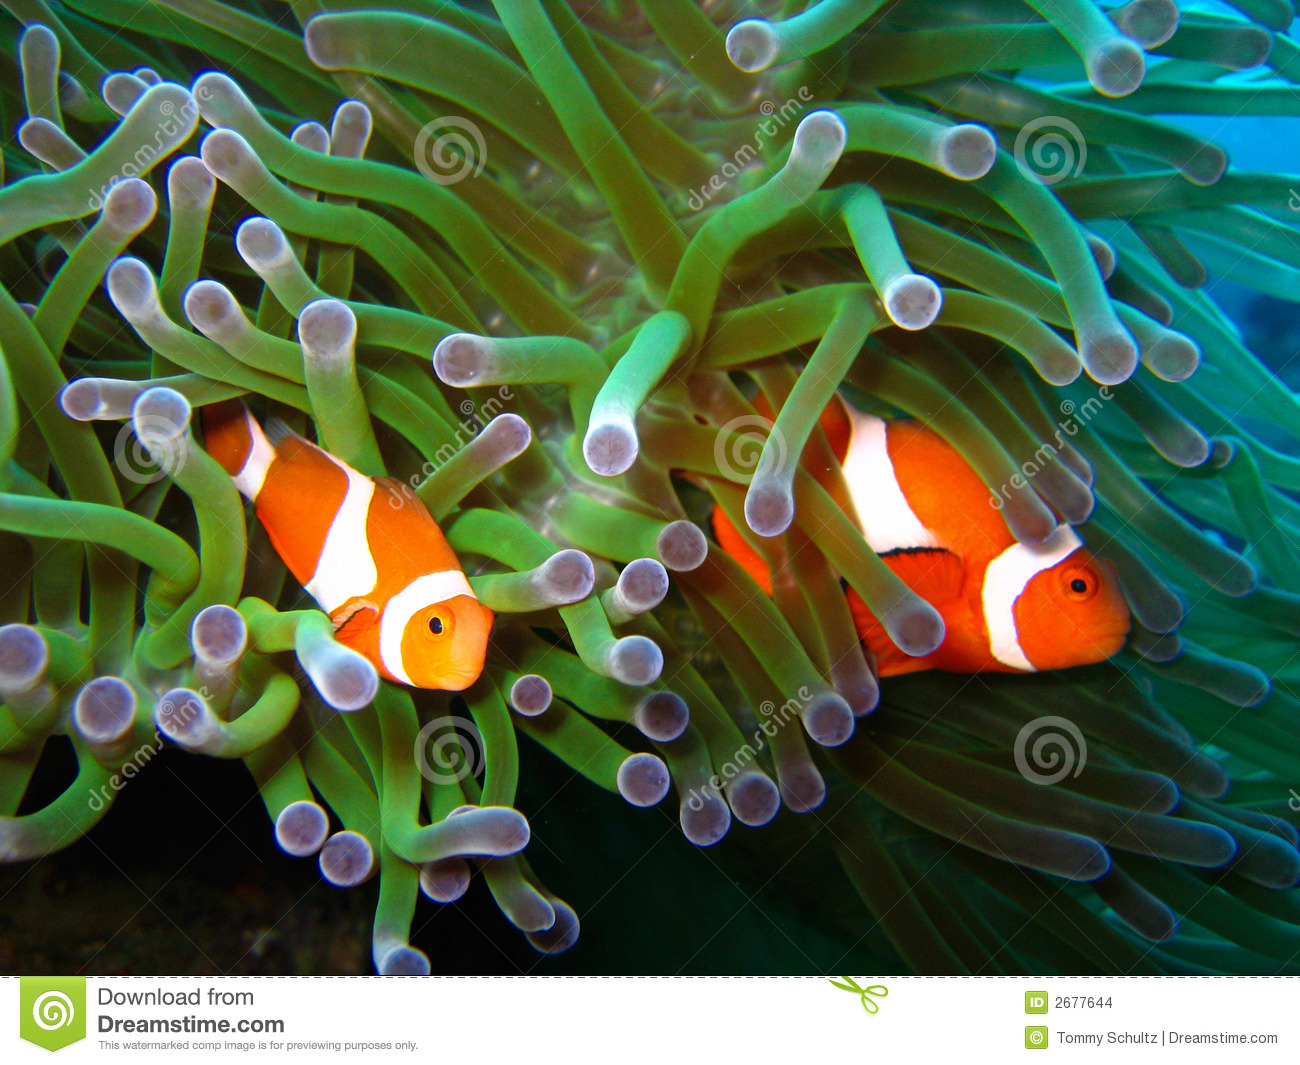 Tropical Clown Fish Coral Stock Images - Image: 2677644